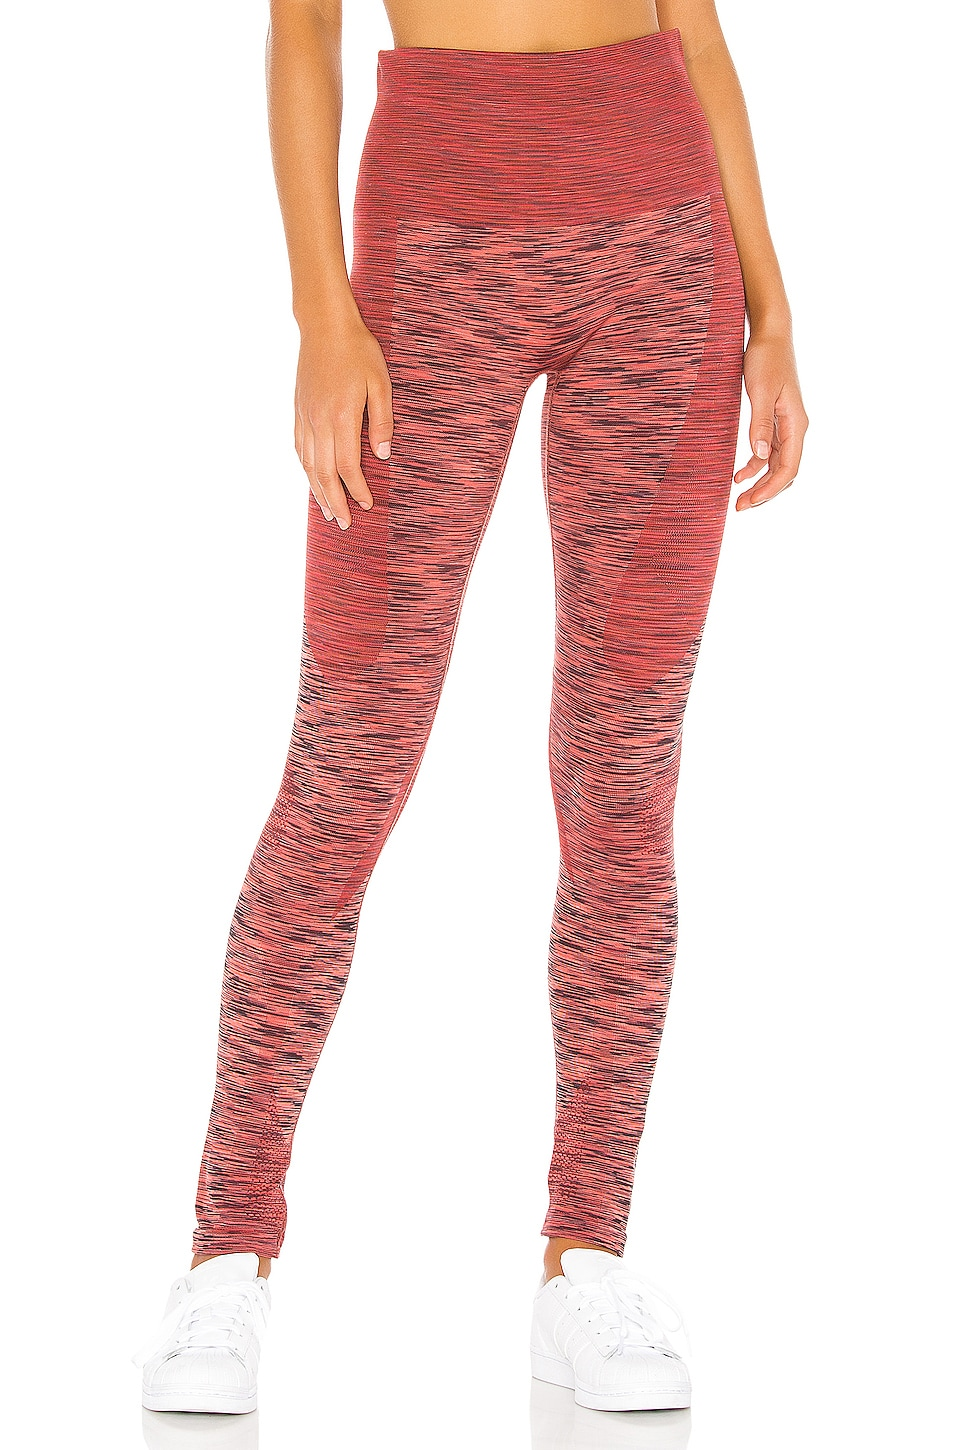 LNDR Space Legging in Pink